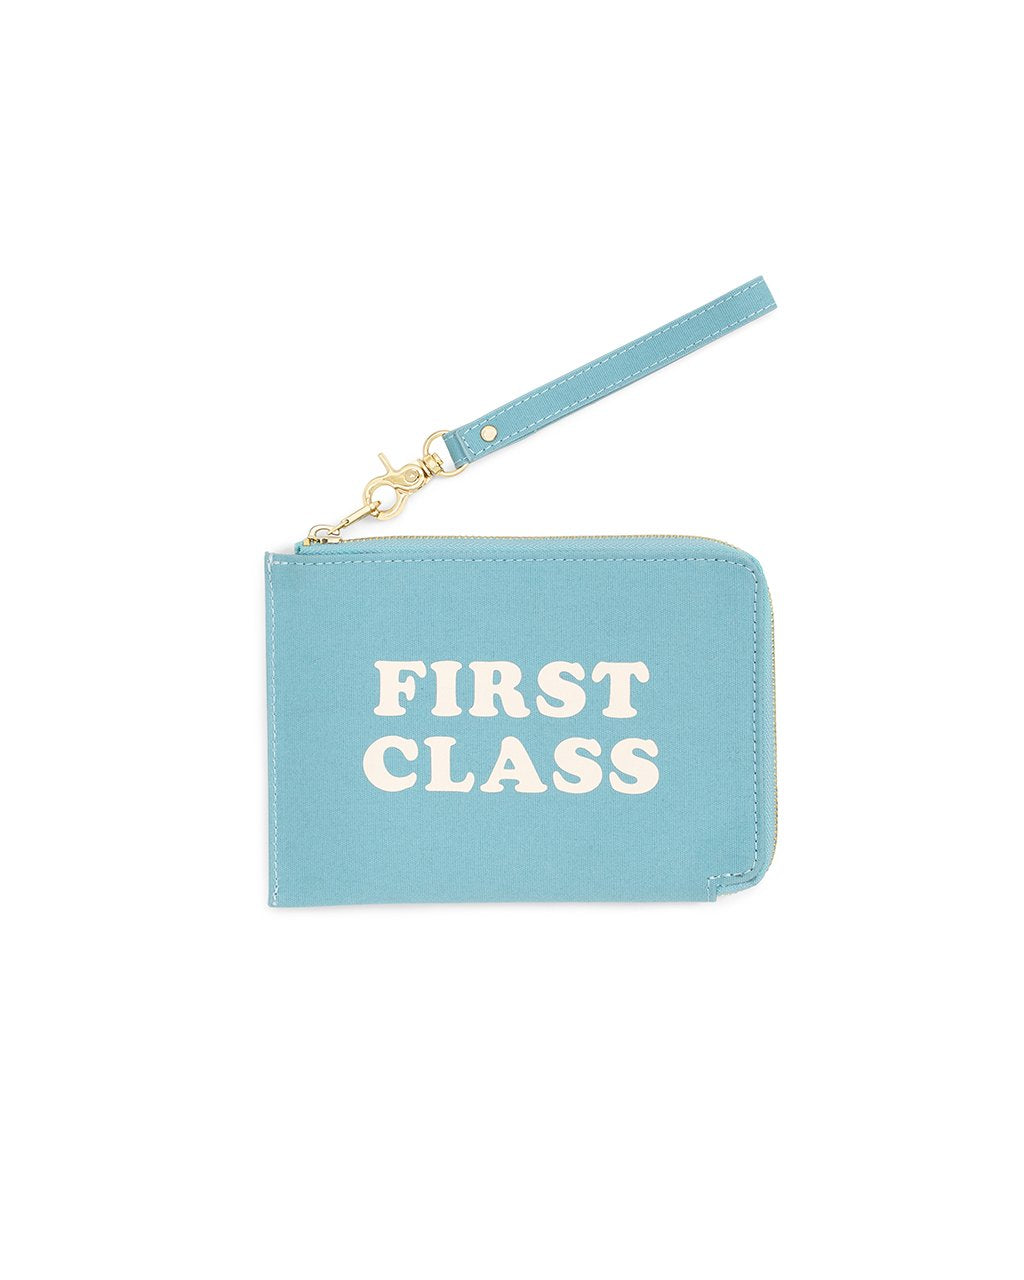 "Blue travel clutch with strap, with text that reads ""FIRST CLASS"""